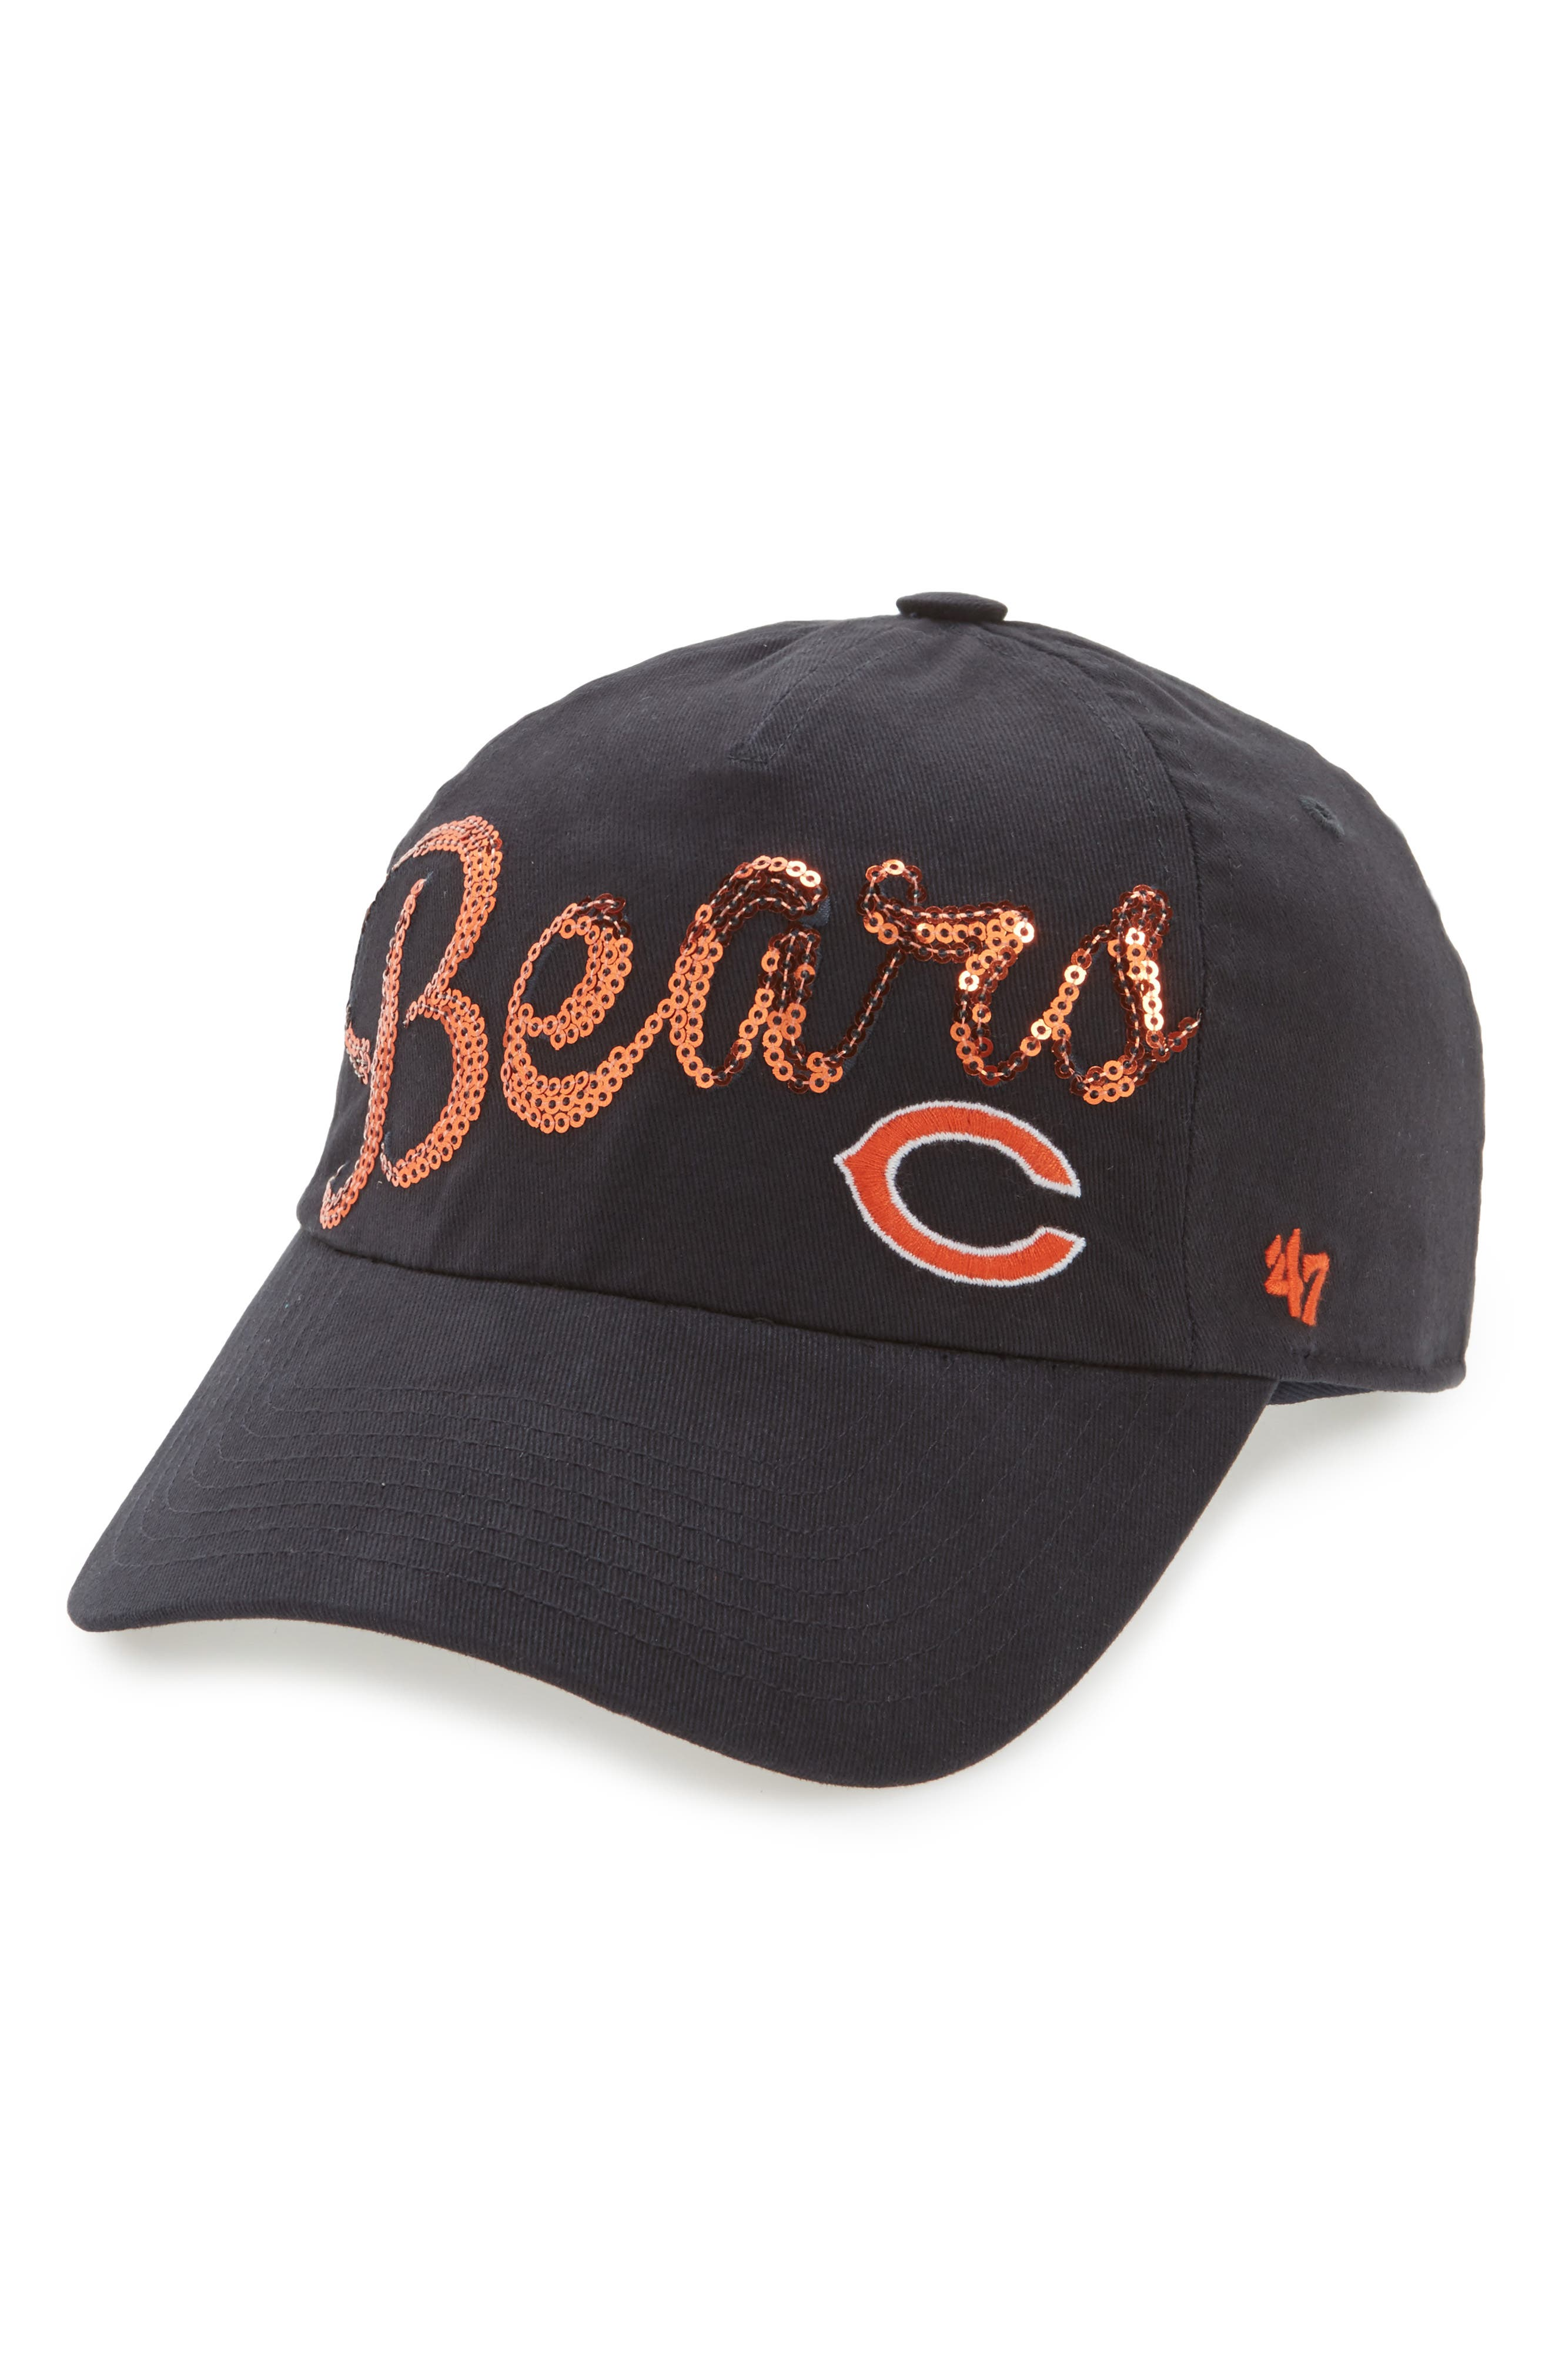 Alternate Image 1 Selected - '47 Chicago Bears Sparkle Cap